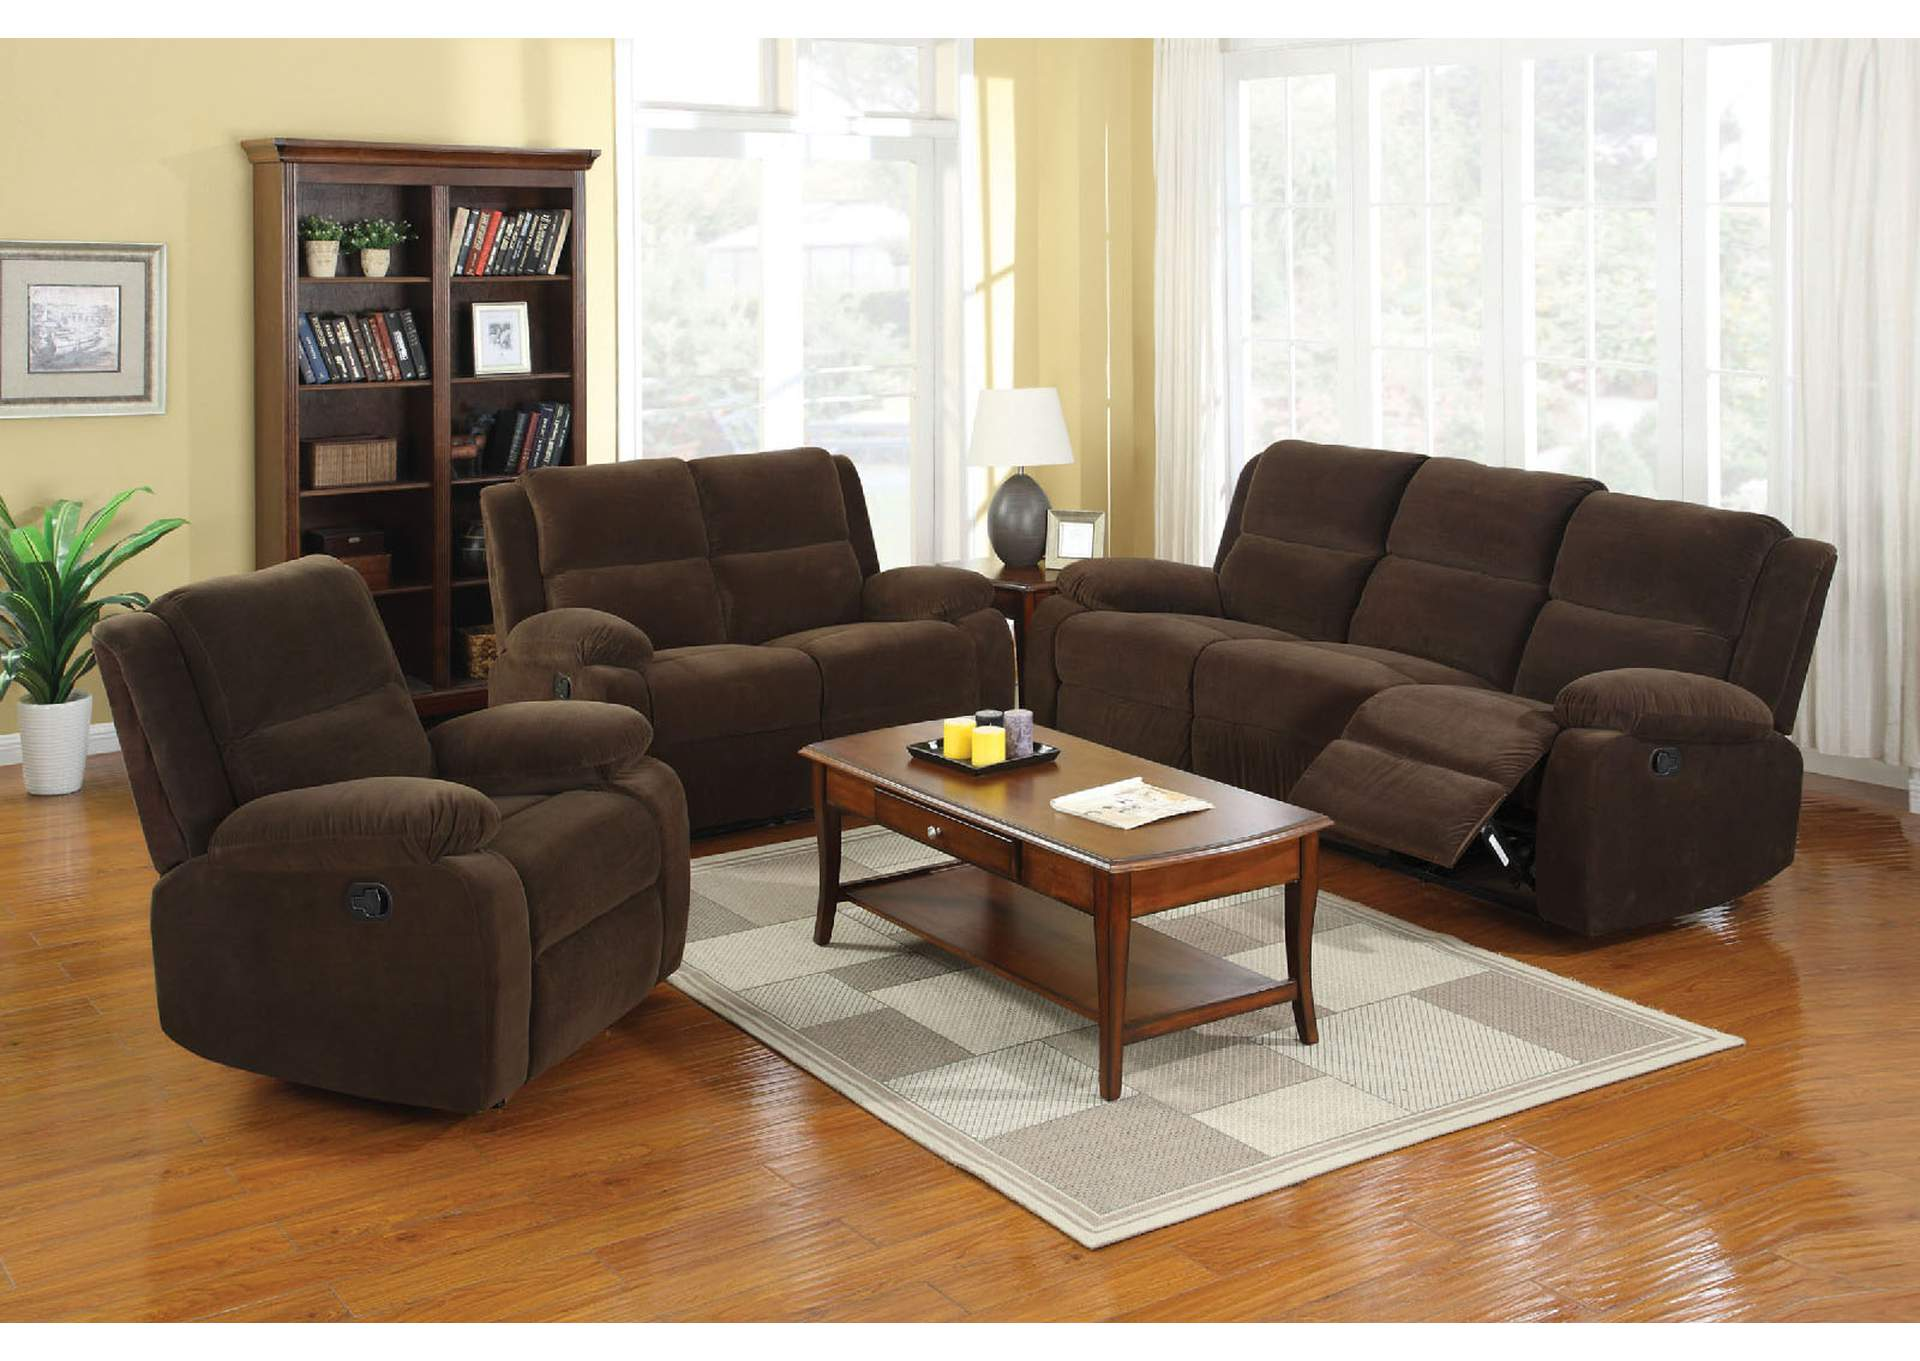 Astonishing Furniture Express Hawaii Haven Dark Brown Sofa And Loveseat Customarchery Wood Chair Design Ideas Customarcherynet